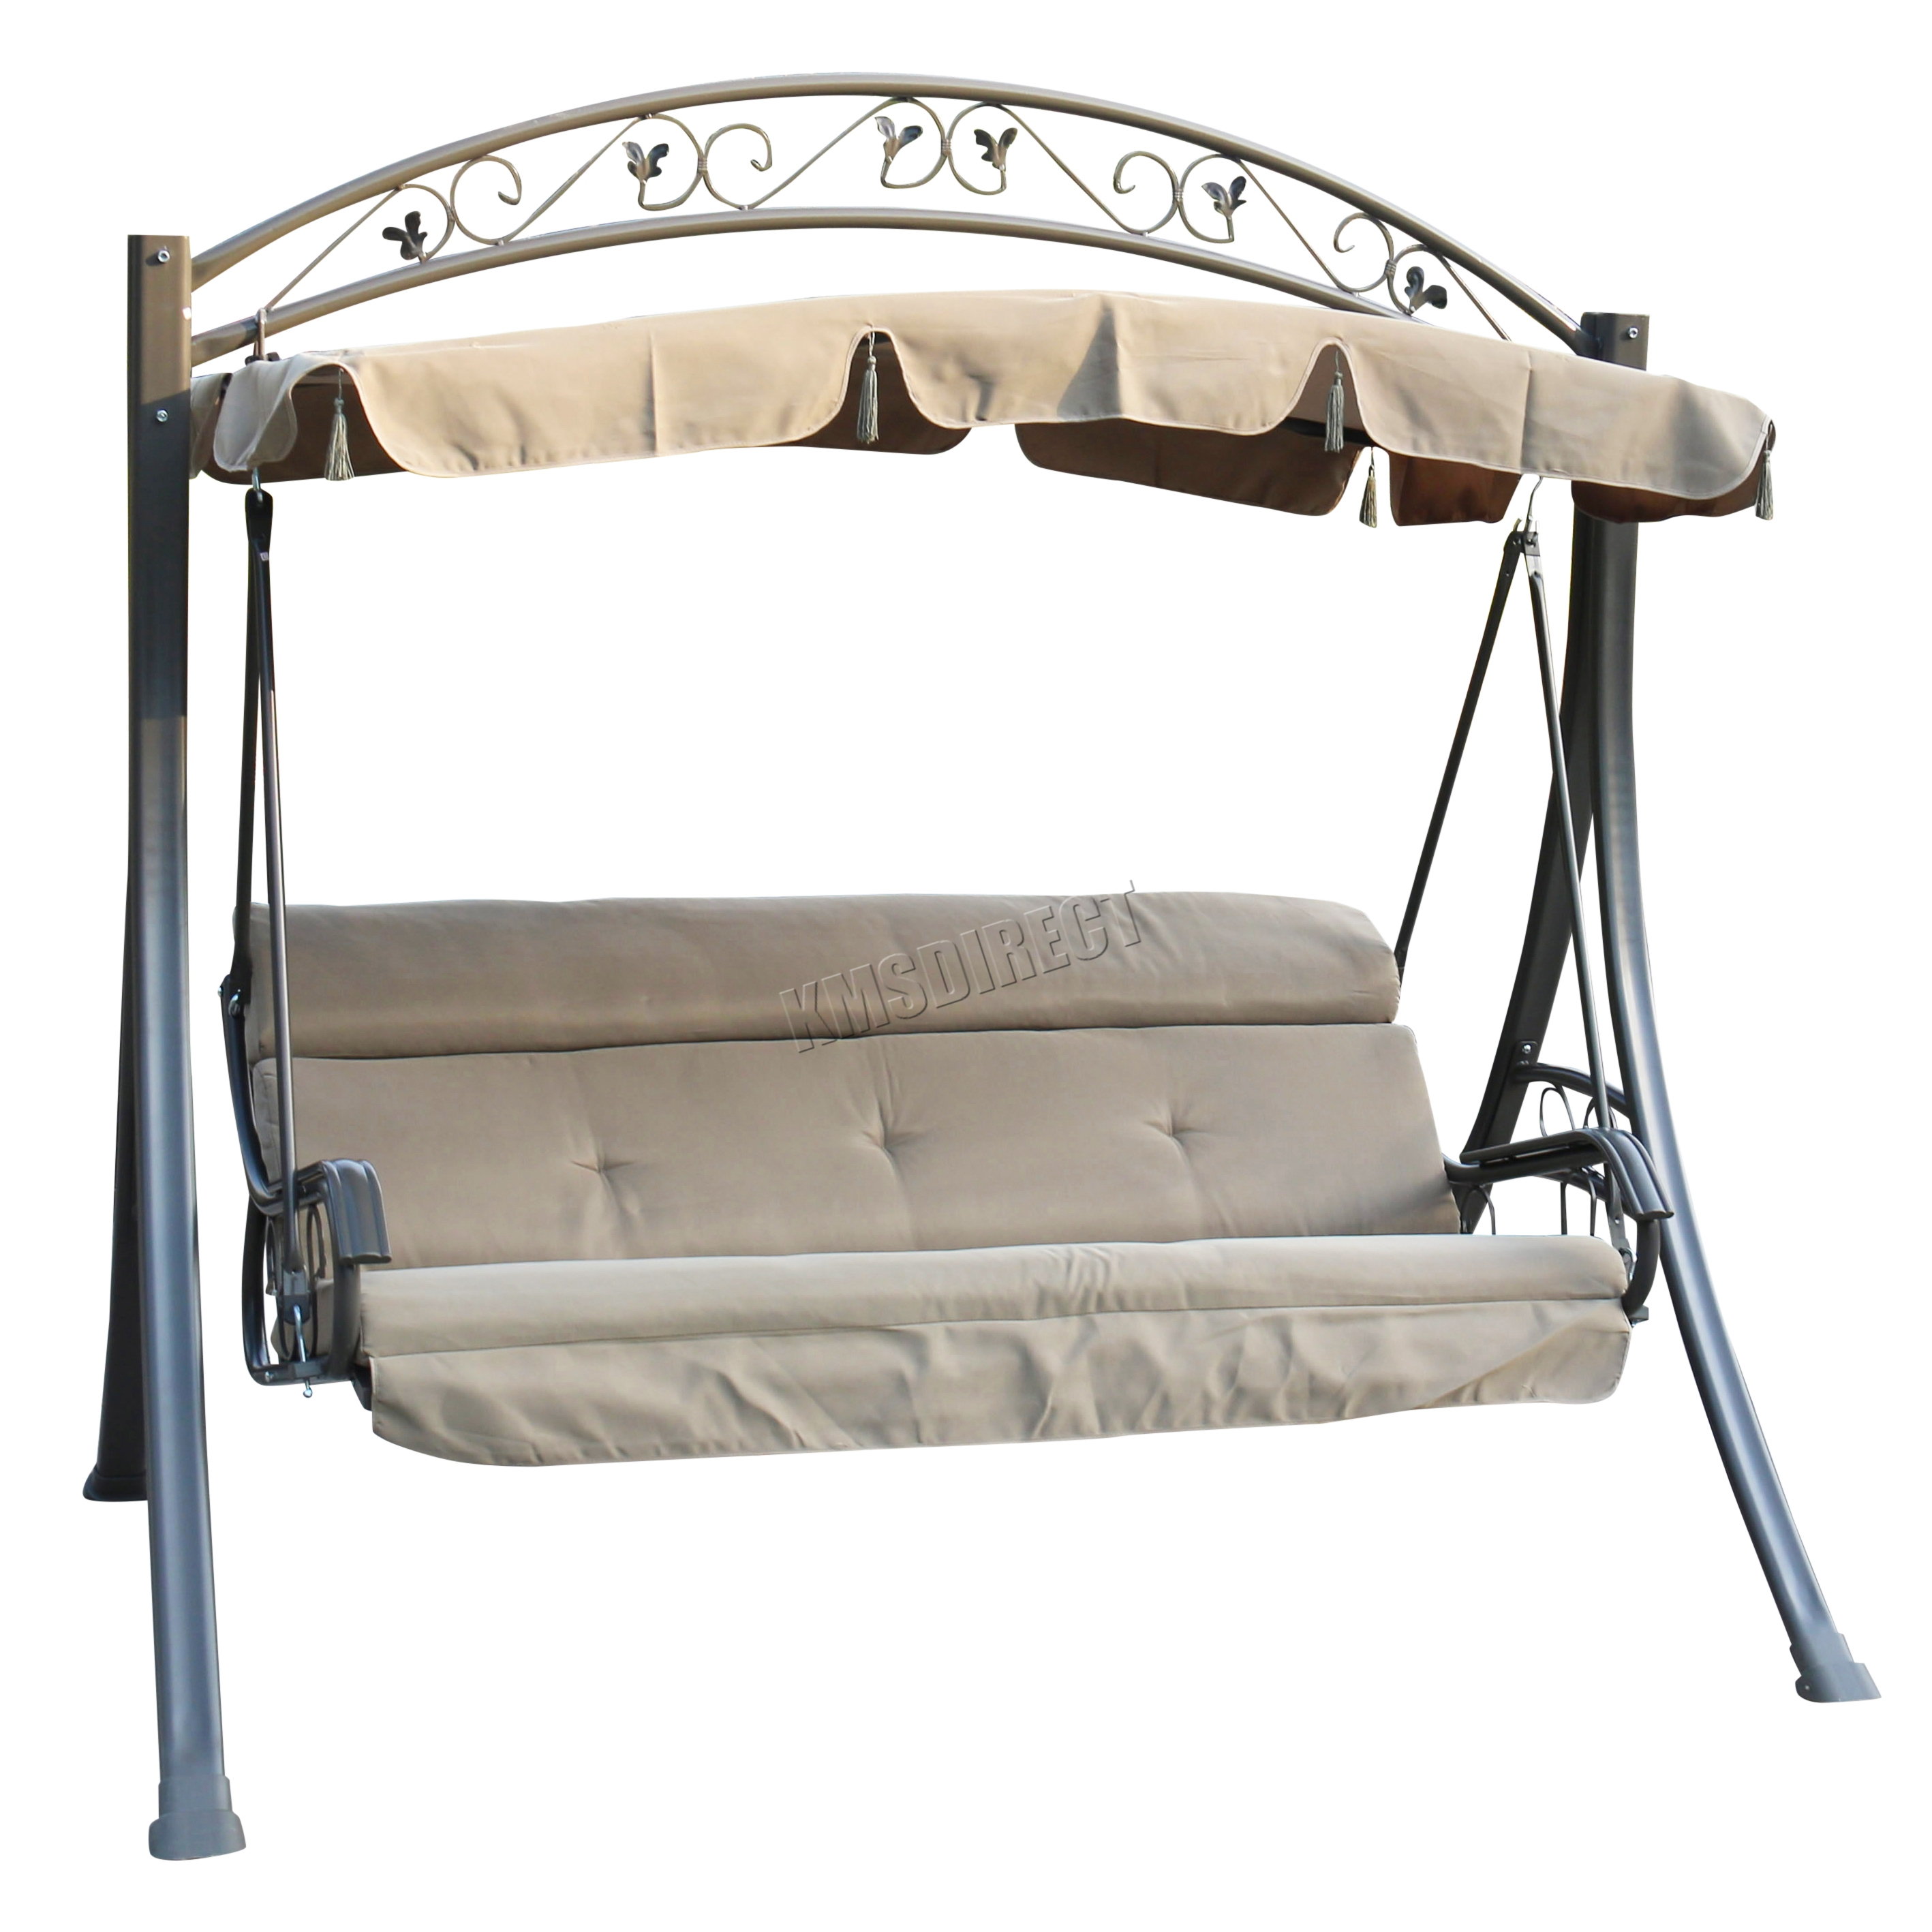 double rocking nest chair gdcafdfjfah swing indoor new rattan single and basket adult hammock pe item outdoor bed hanging